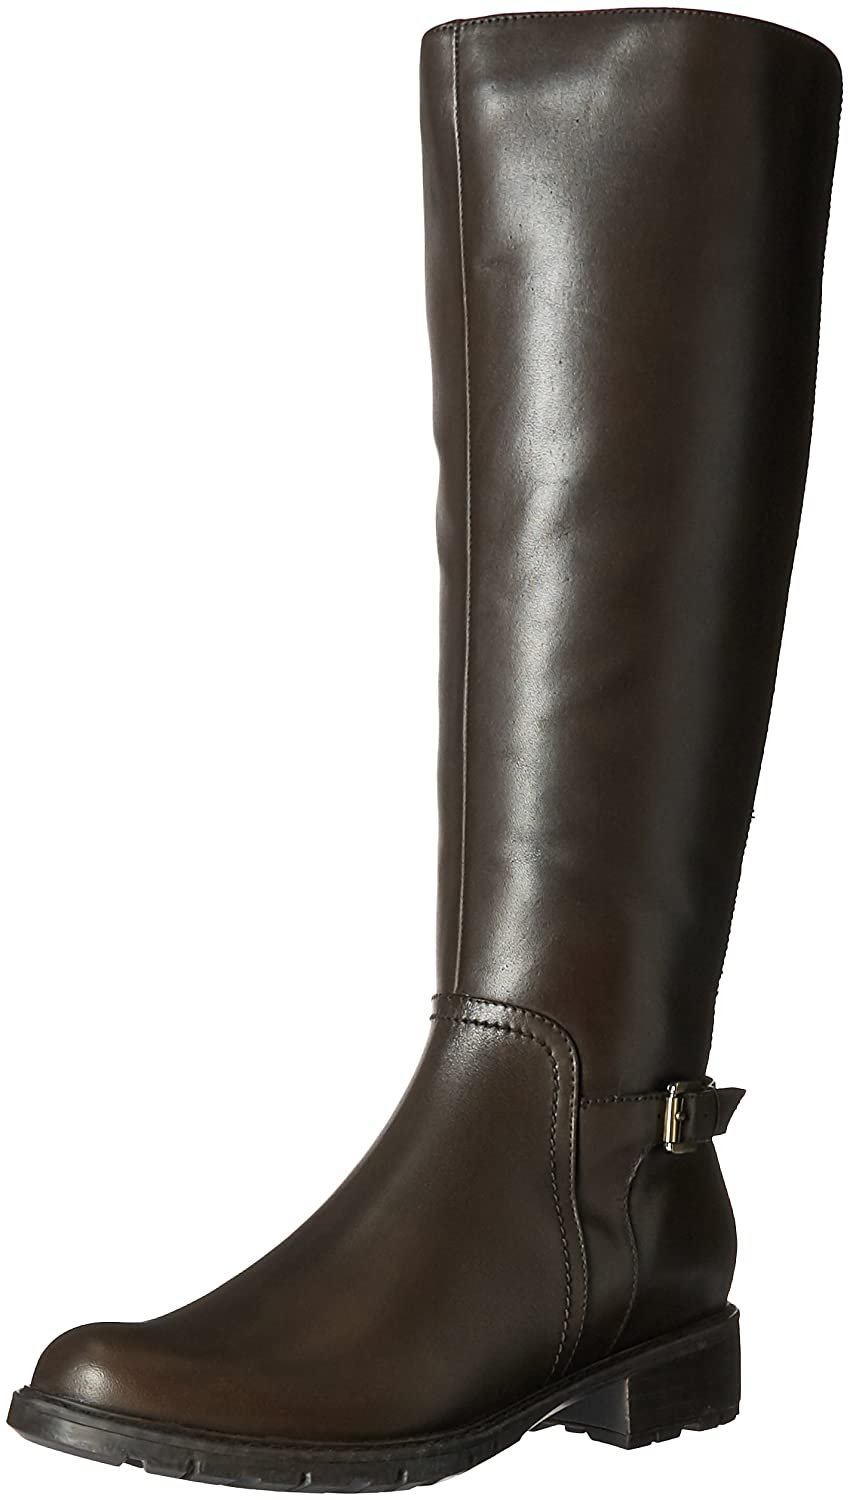 Blondo Women's Vassa Waterproof Riding Boot B010161OD4 11 B(M) US|Coffee Leather